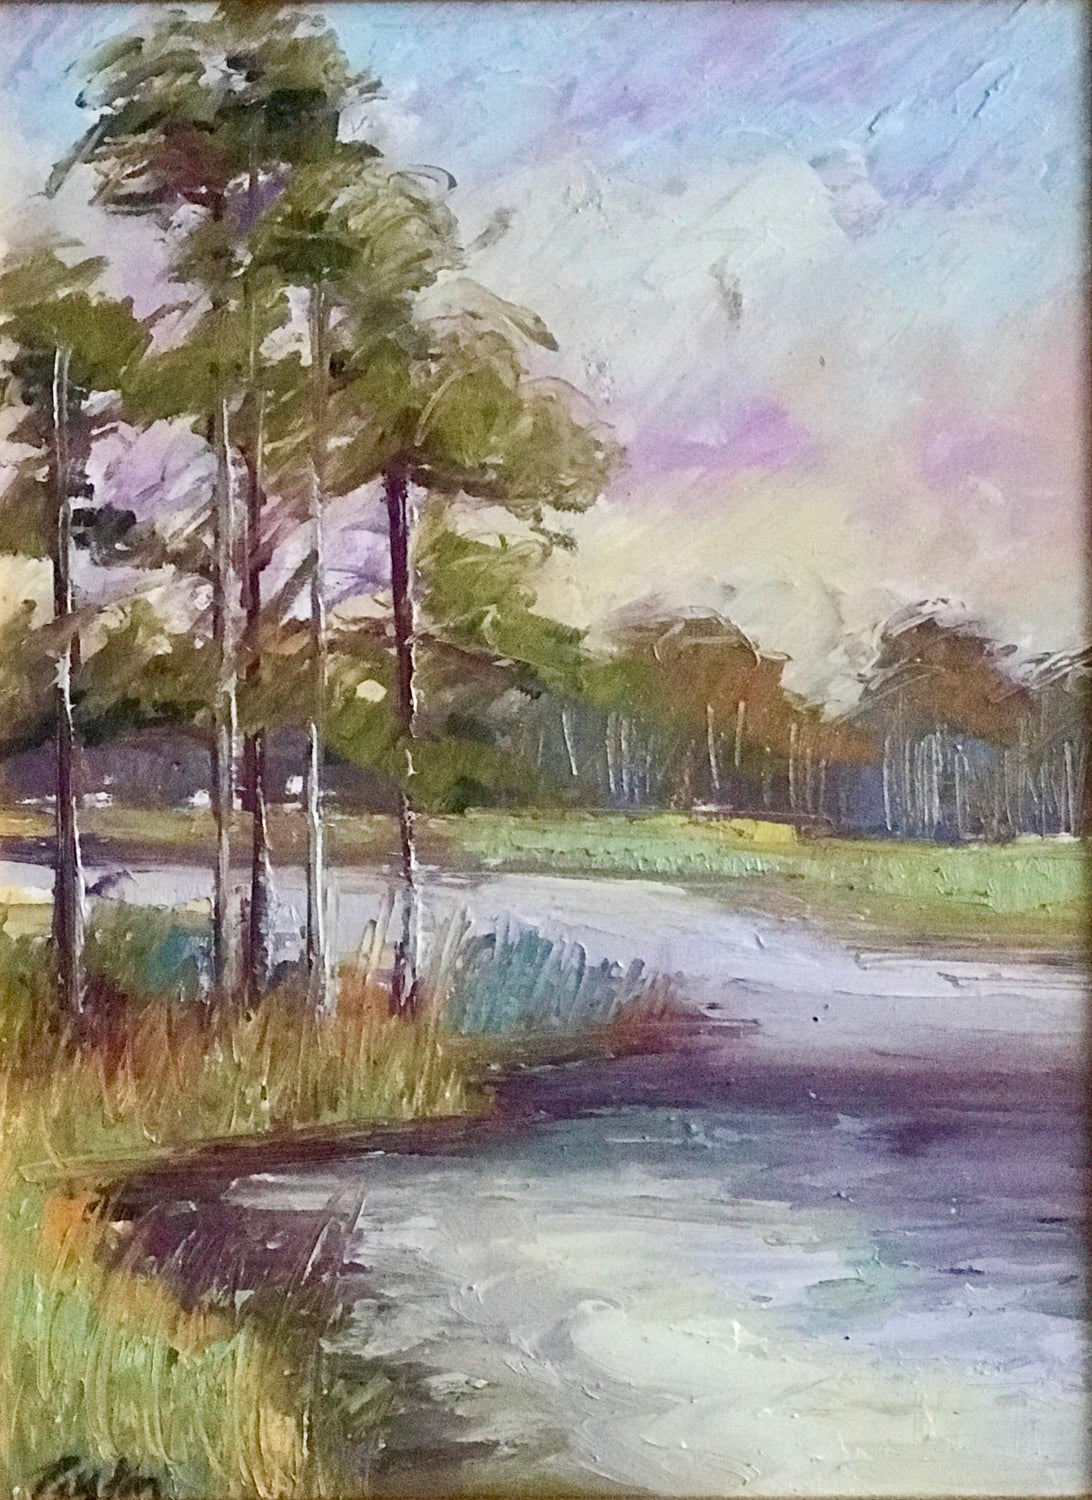 Western Lake, Size 12 x 9, Available at the Caron Gallery